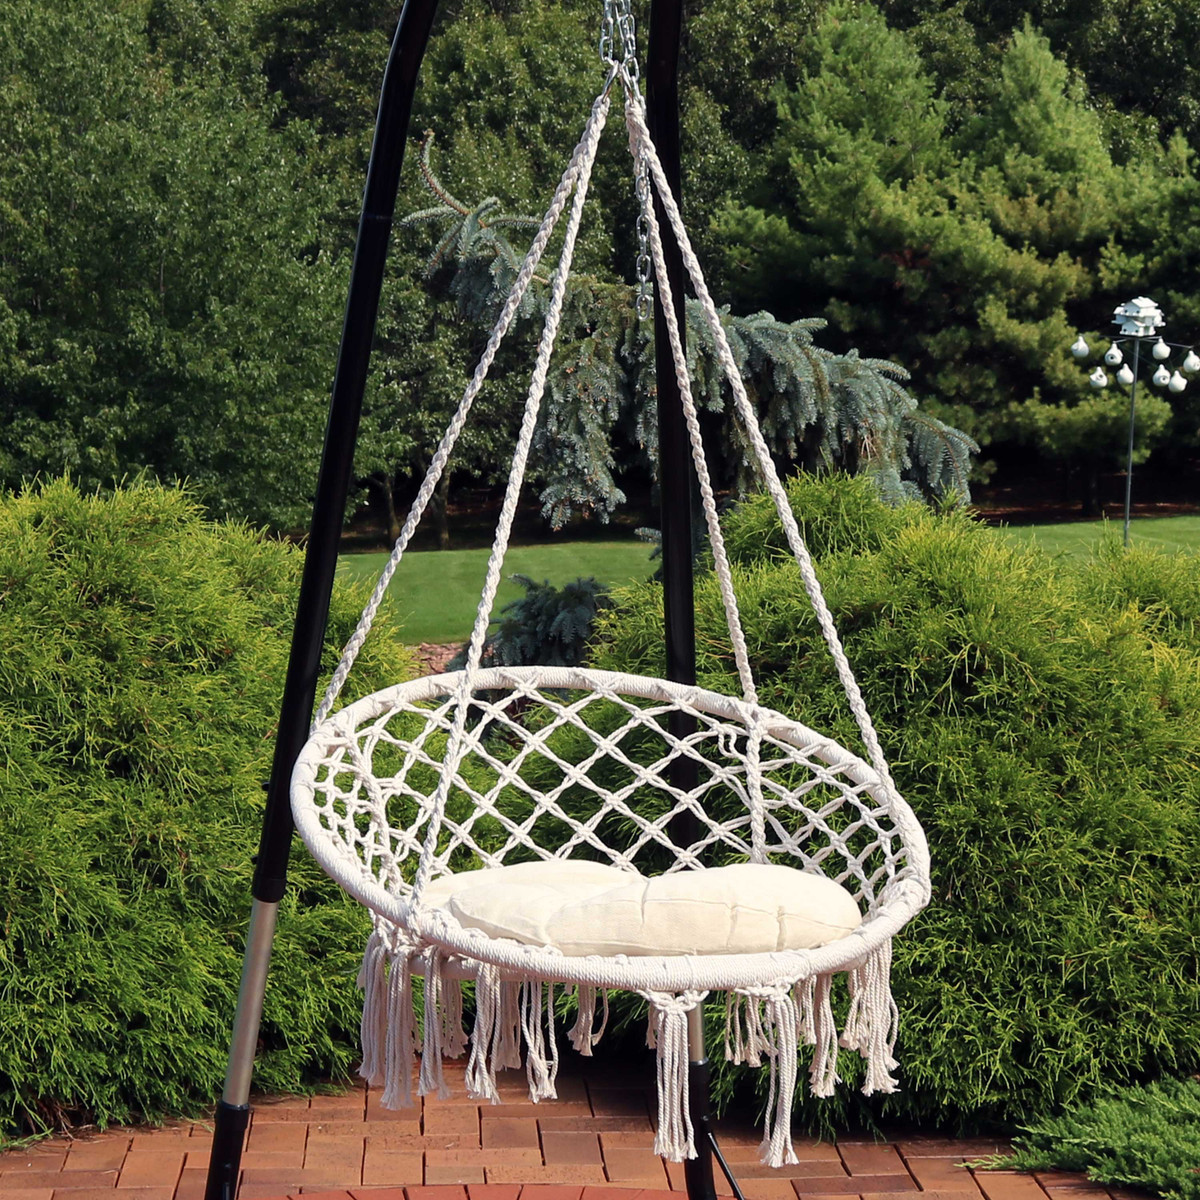 Sunnydaze Hammock Chair Bohemian Macrame Hanging Netted Swing With Seat Cushion And Tassels Mounting Hardware Included Indoor Or Outdoor Use